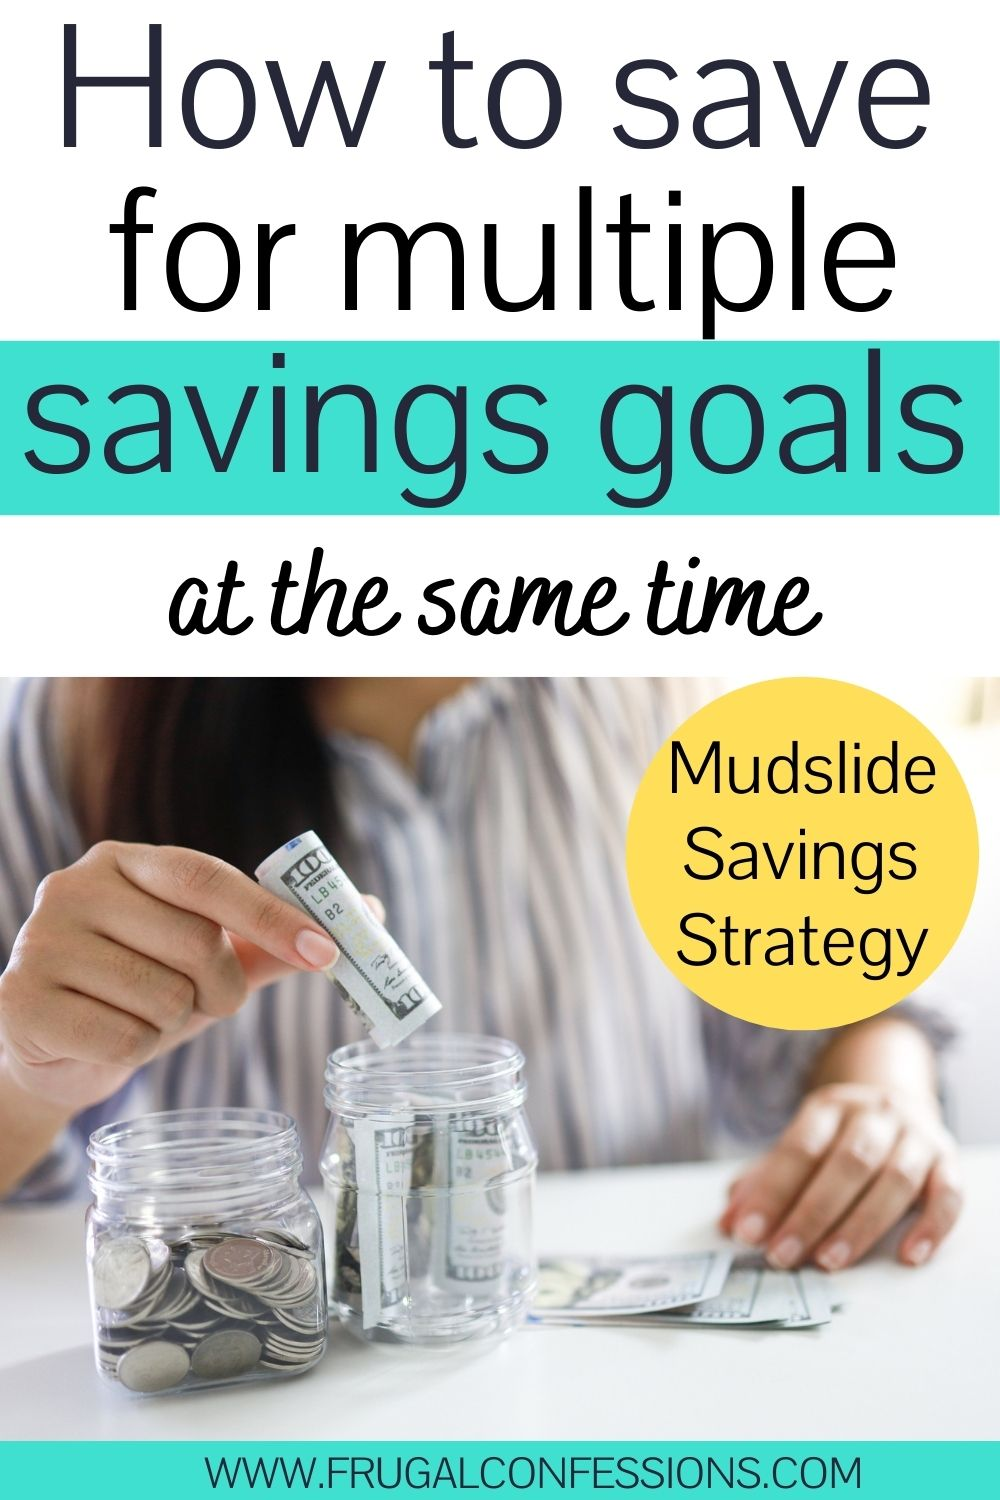 """woman putting money into two savings jars, text overlay """"how to save for multiple savings goals at the same time - mudslide savings strategy"""""""